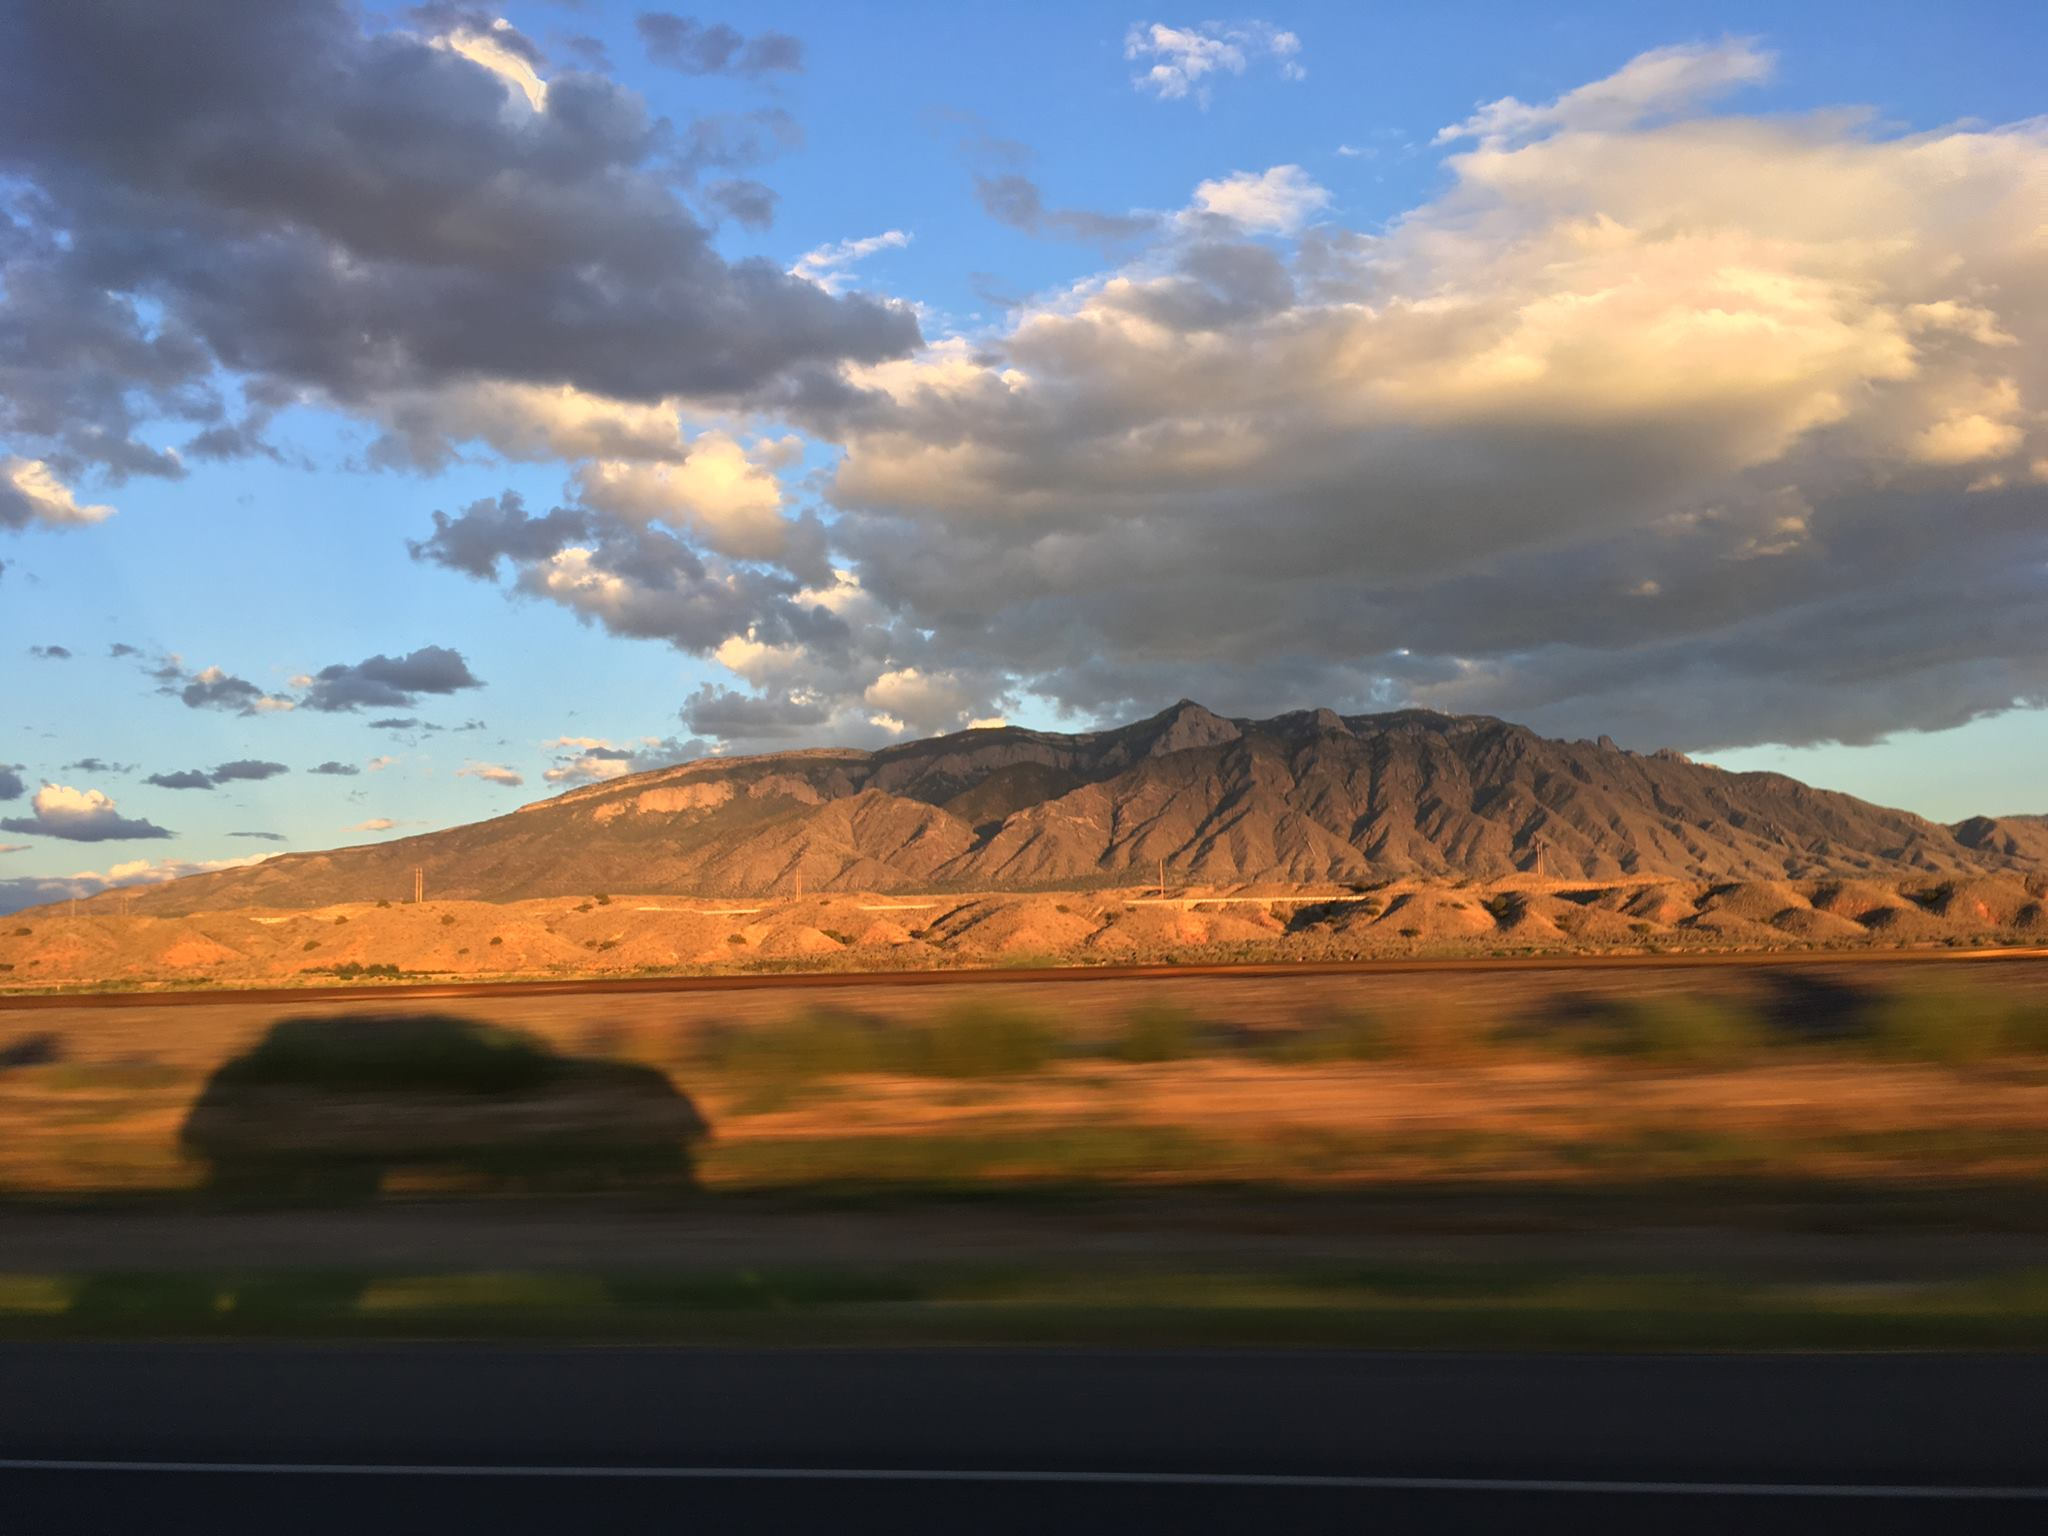 """""""The View From New Mexico"""" Published by  The Policy  Sep 30, 2019  On the night of Trump's campaign rally in Rio Rancho, I was fifteen minutes away from the venue, working late. I forgot Air Force One had landed at the Albuquerque Sunport until I drove home on I-25 southbound and passed police car after police car. They were parked at each on-ramp, blue and red lights sparkling like continuous patriotic fireworks in the black of night.  […]"""